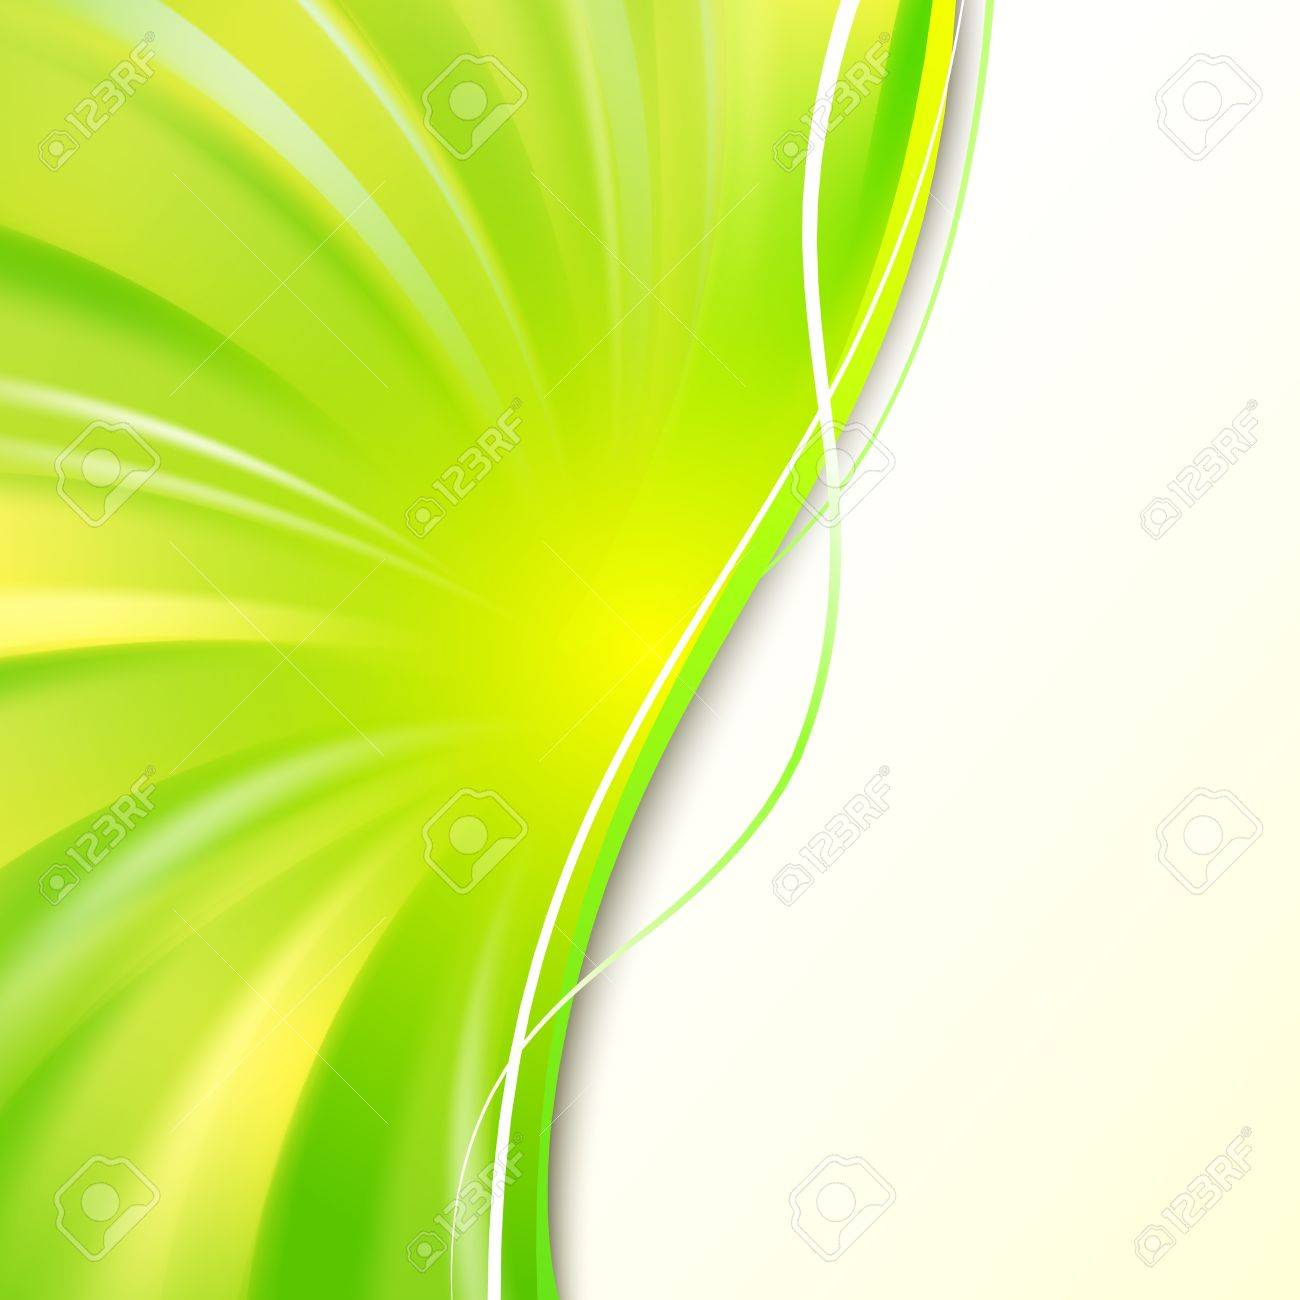 Abstract green cover with smooth lines  Vector background, eps 10, contains transparencies Stock Vector - 17605932